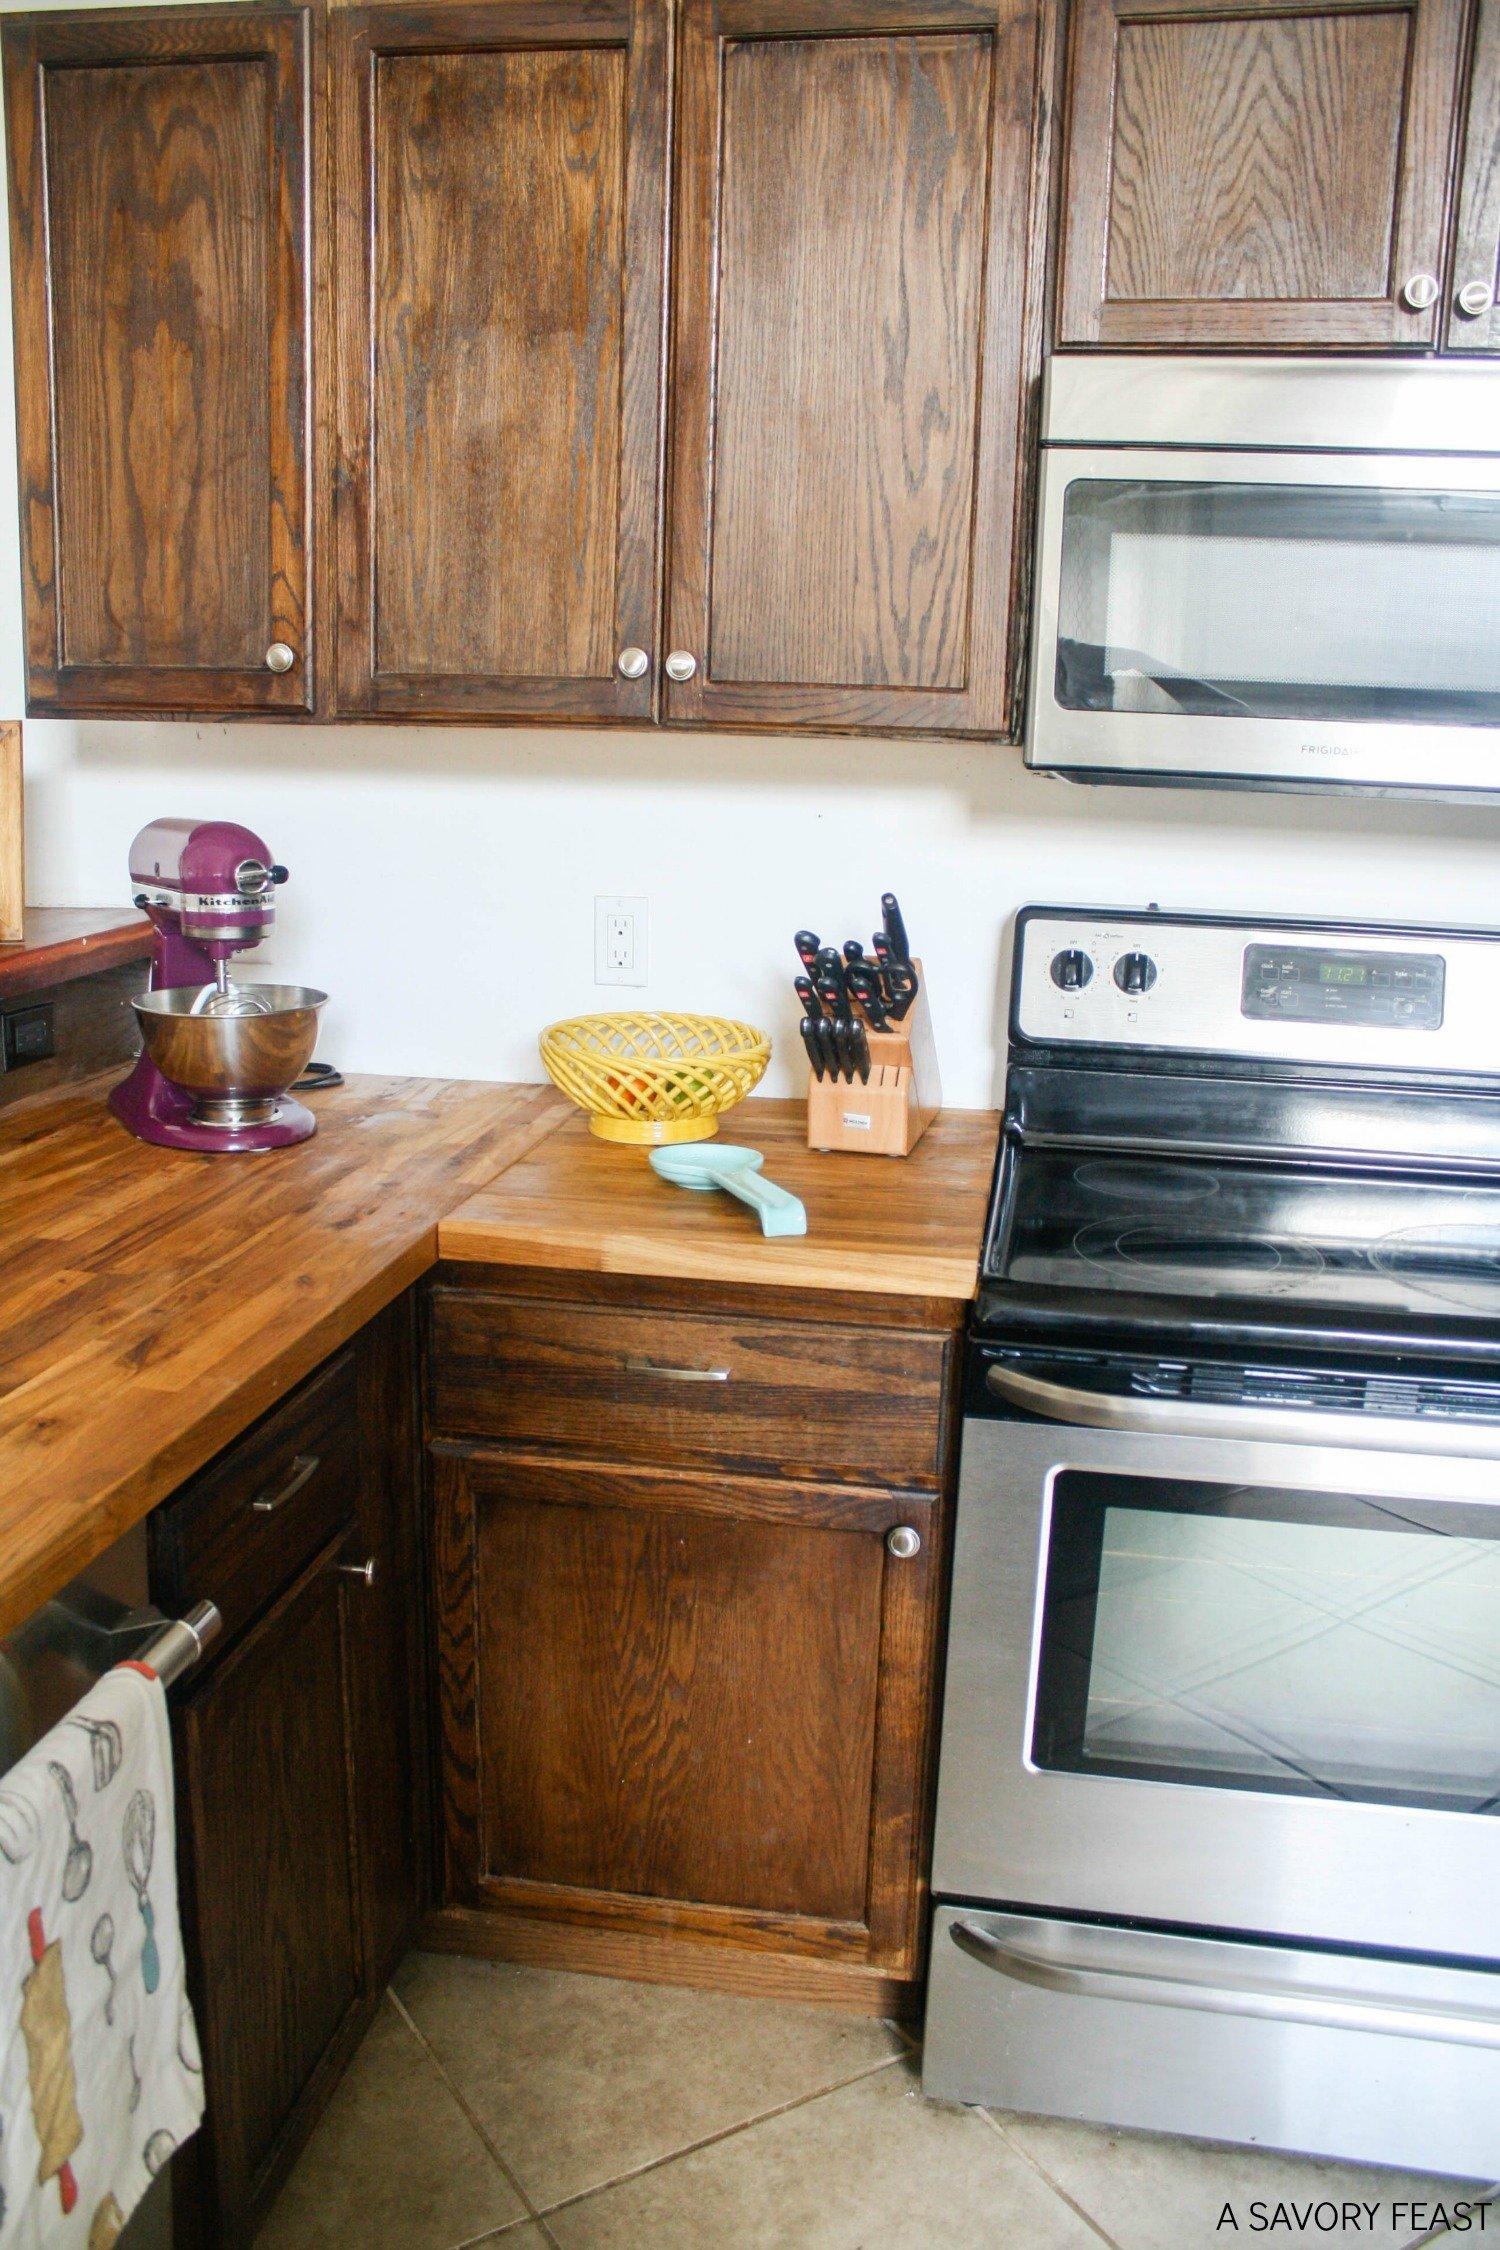 Butcher Block Countertops: My experience after six months, including initial maintenance and everyday use and care.